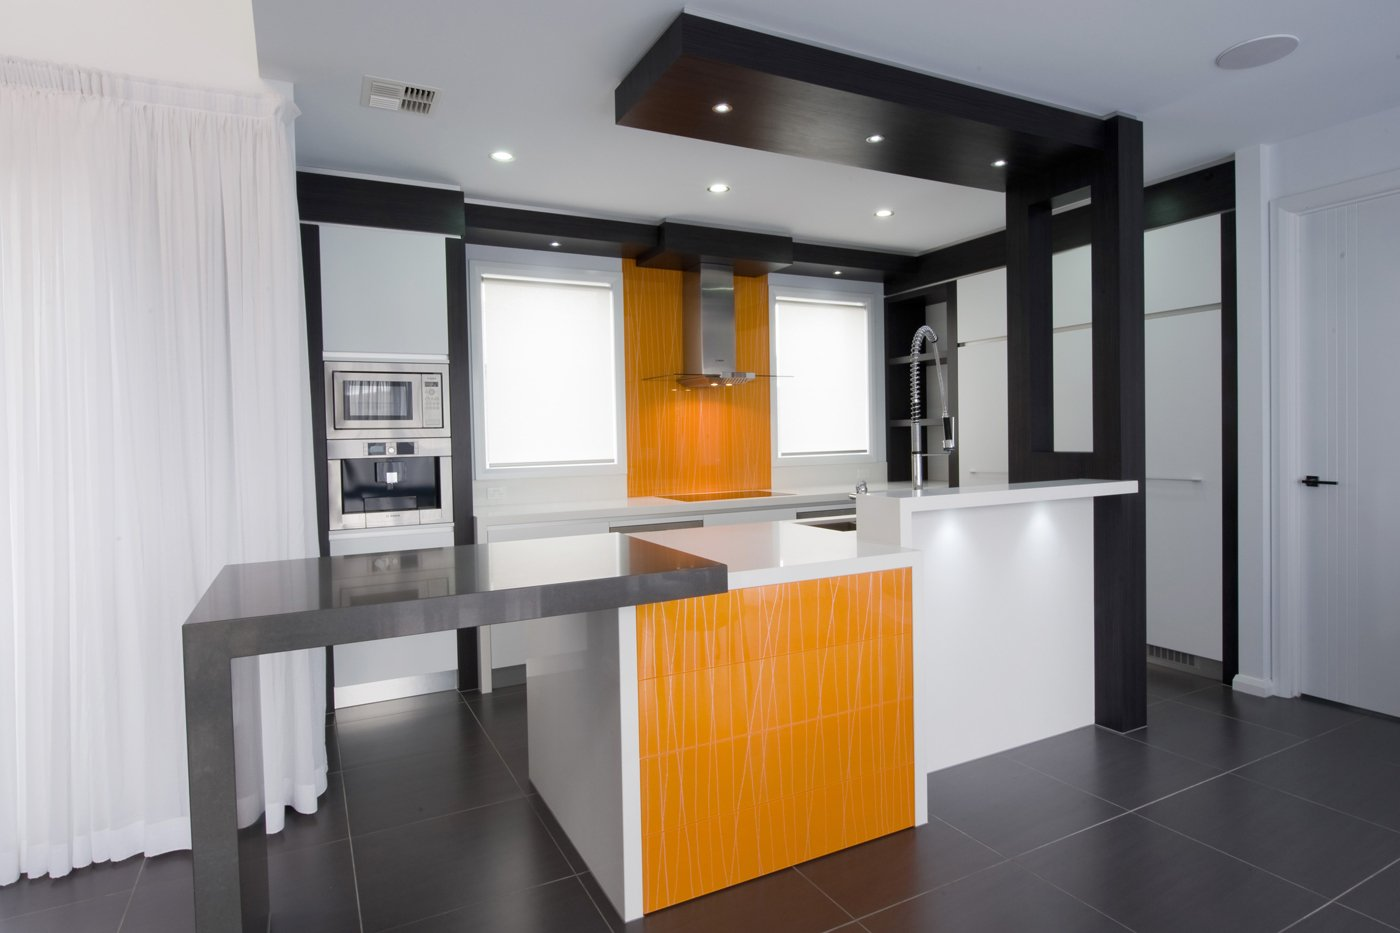 Uncategorized Kitchen Design Canberra simplicity kitchens canberra act kitchen designer custom designs